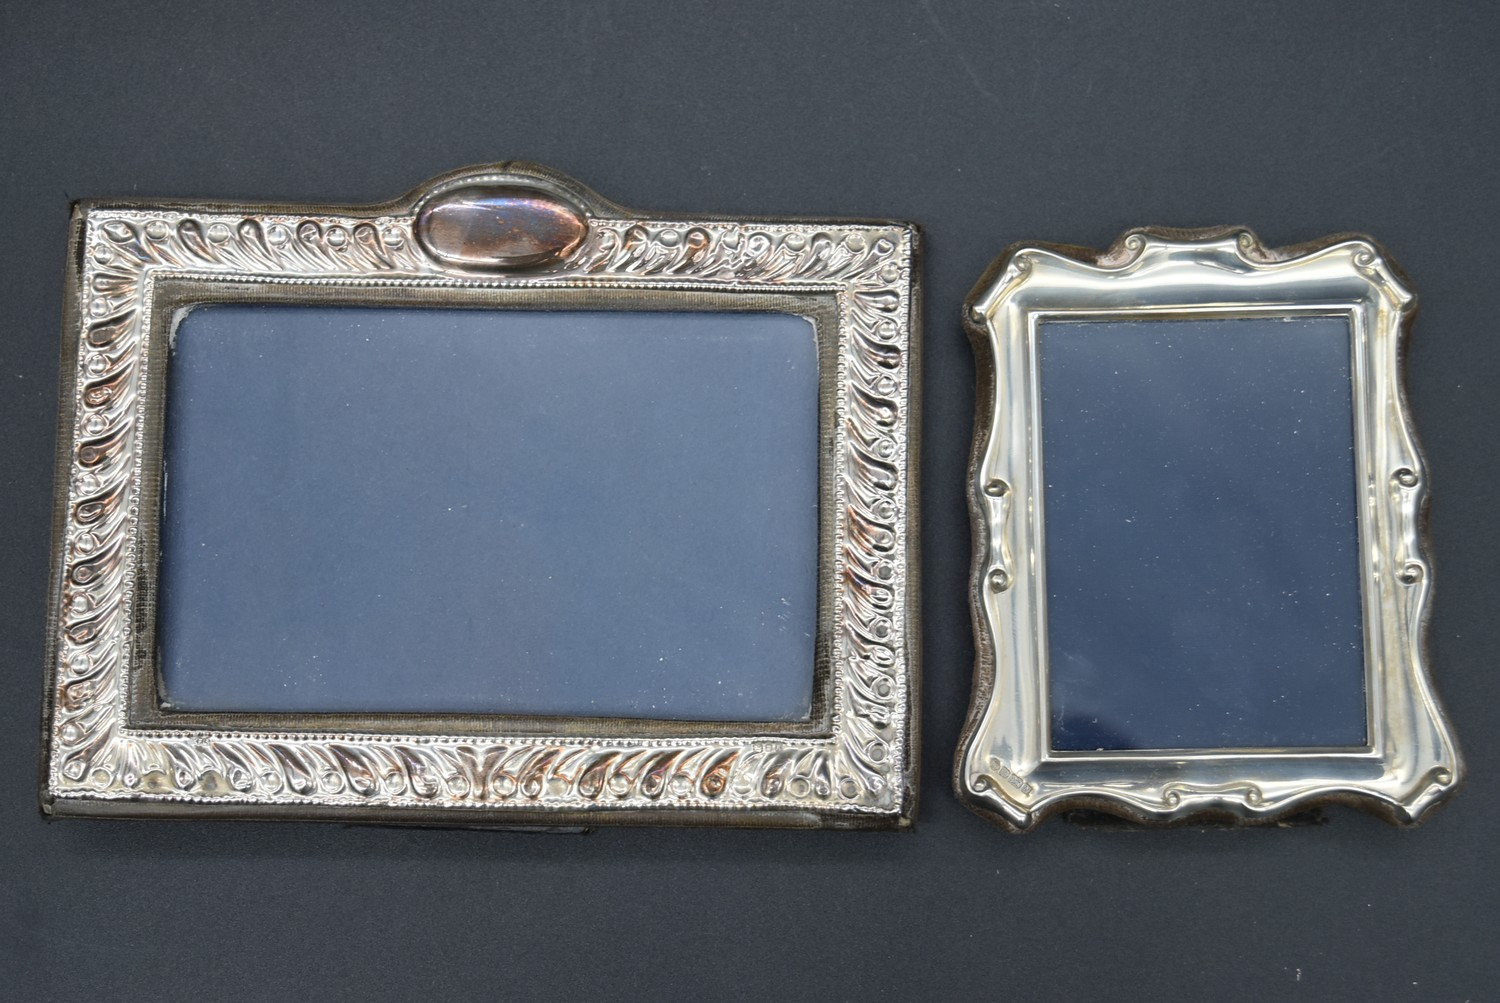 A miscellaneous collection of silver framed easel mirrors, various English hallmarks. H.20cm W. - Image 5 of 13